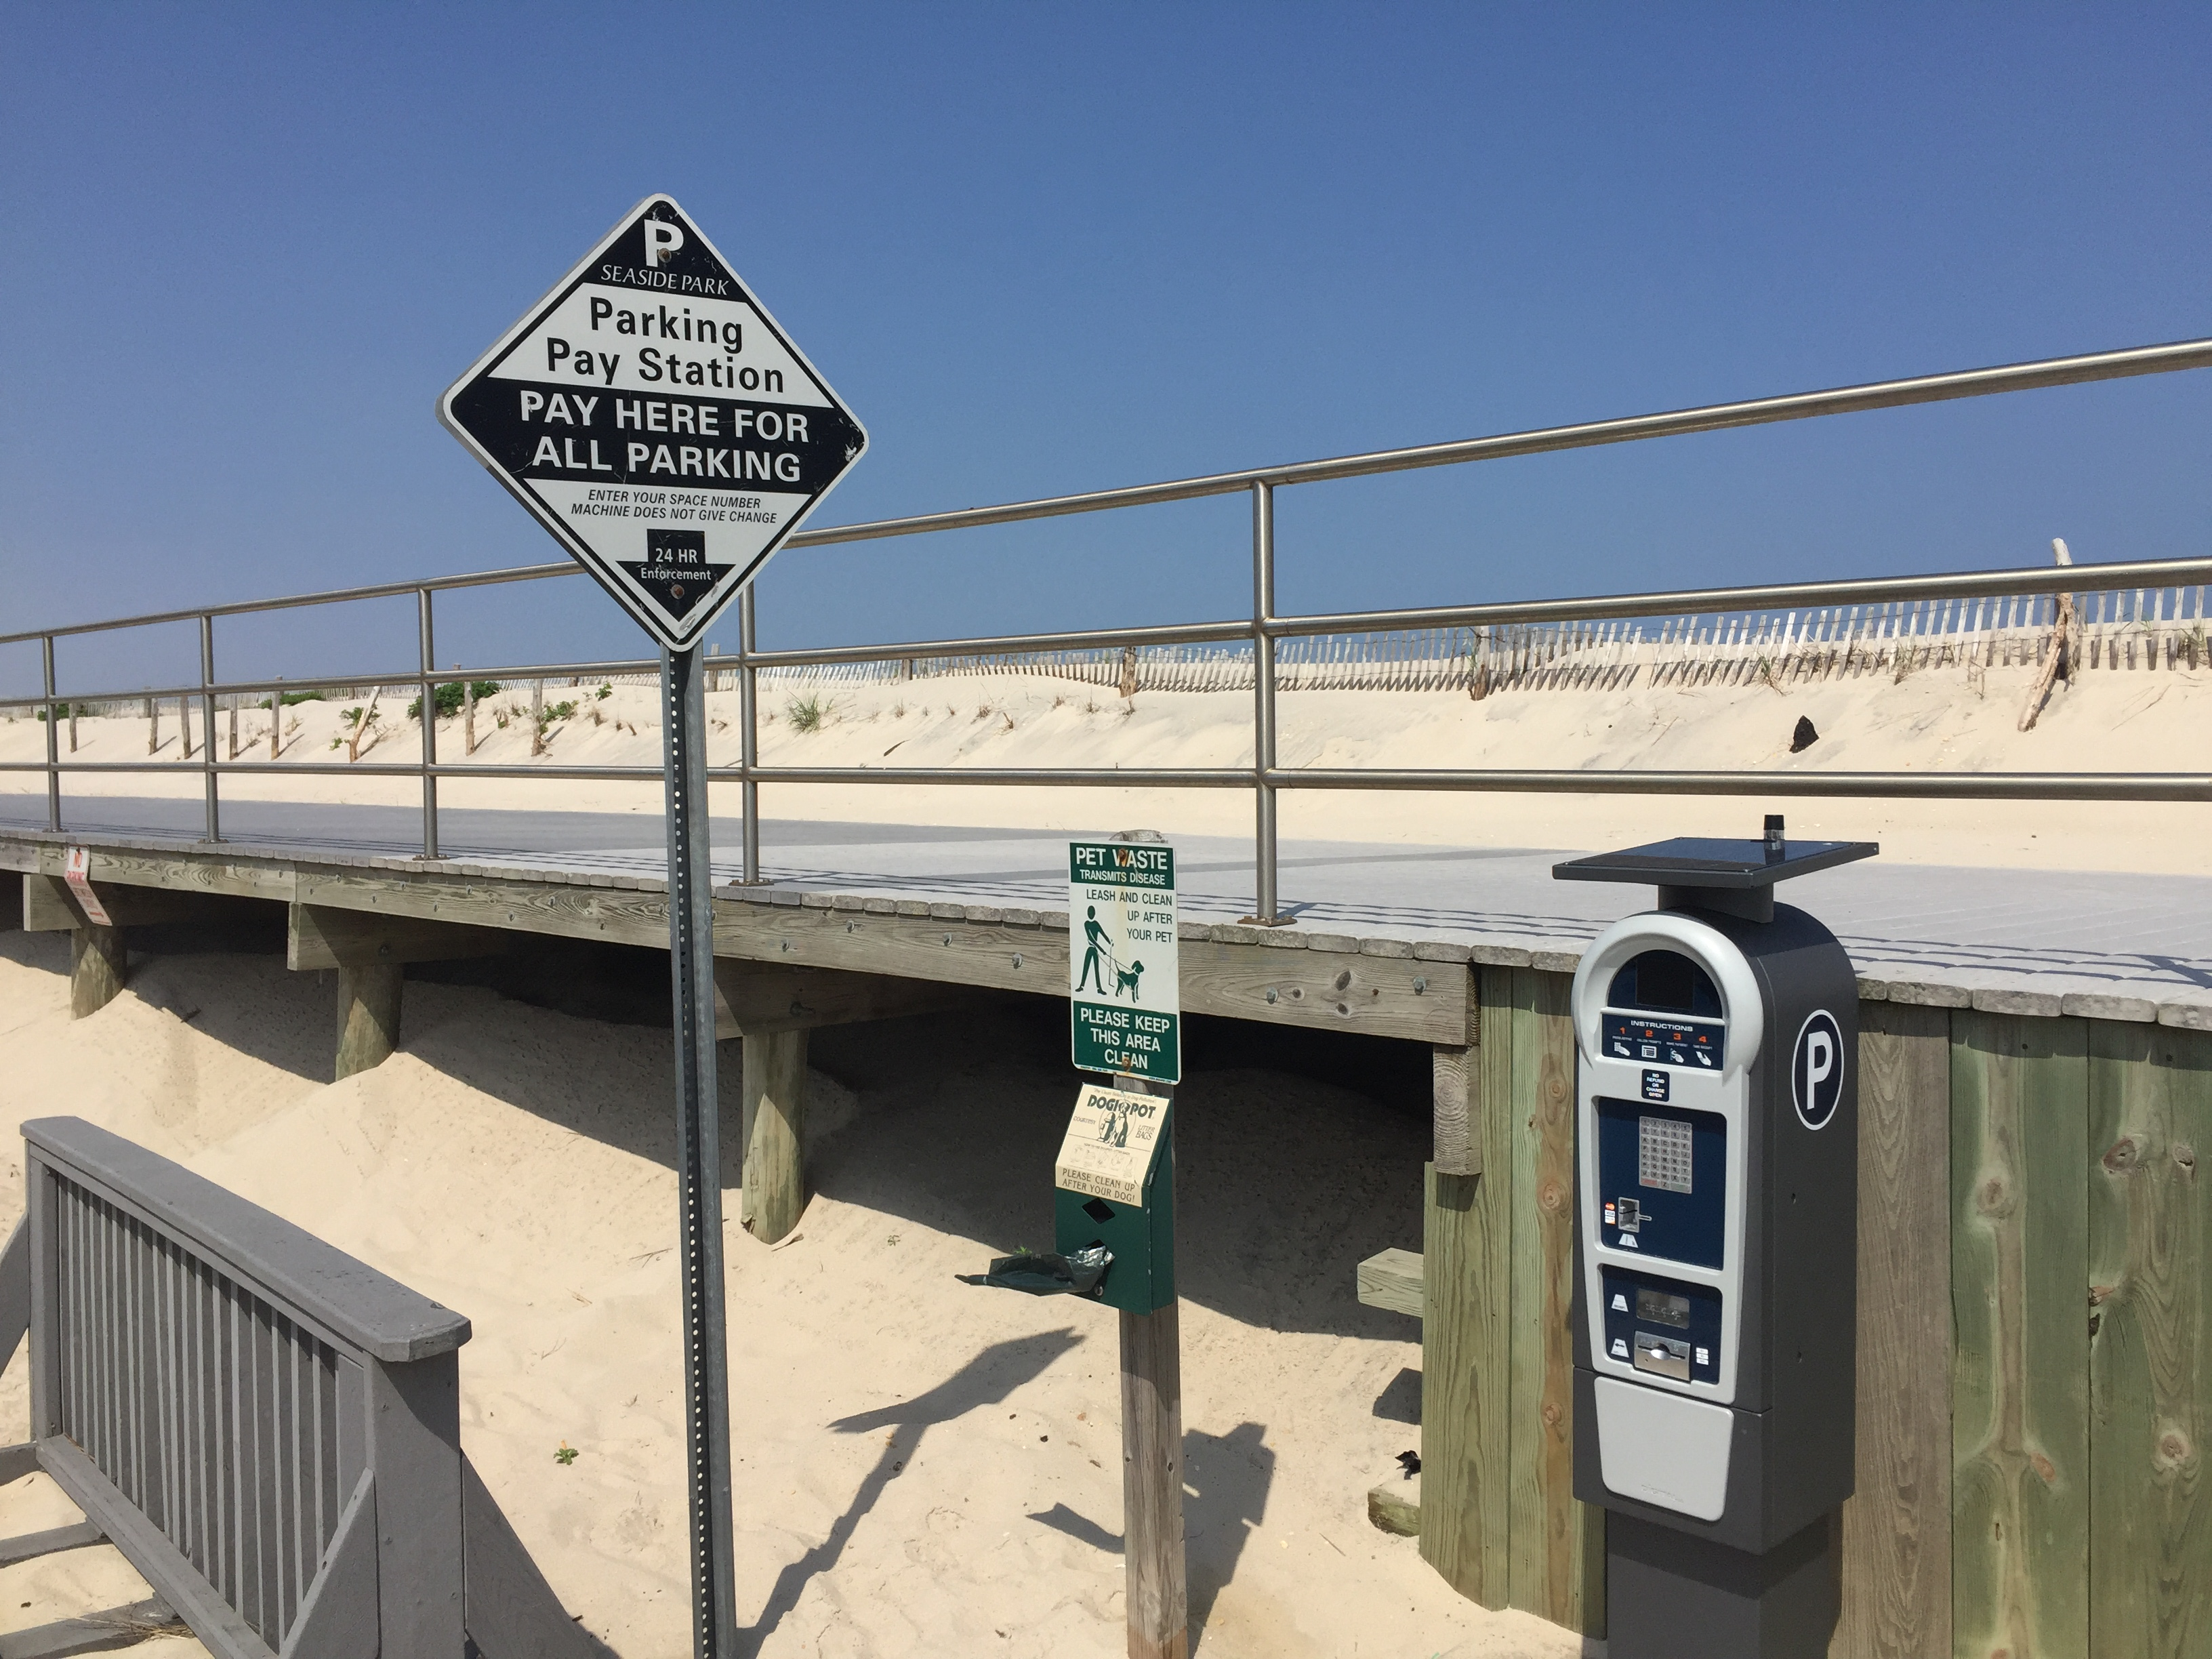 New parking kiosks along Ocean Avenue in Seaside Park. (Photo: Daniel Nee)